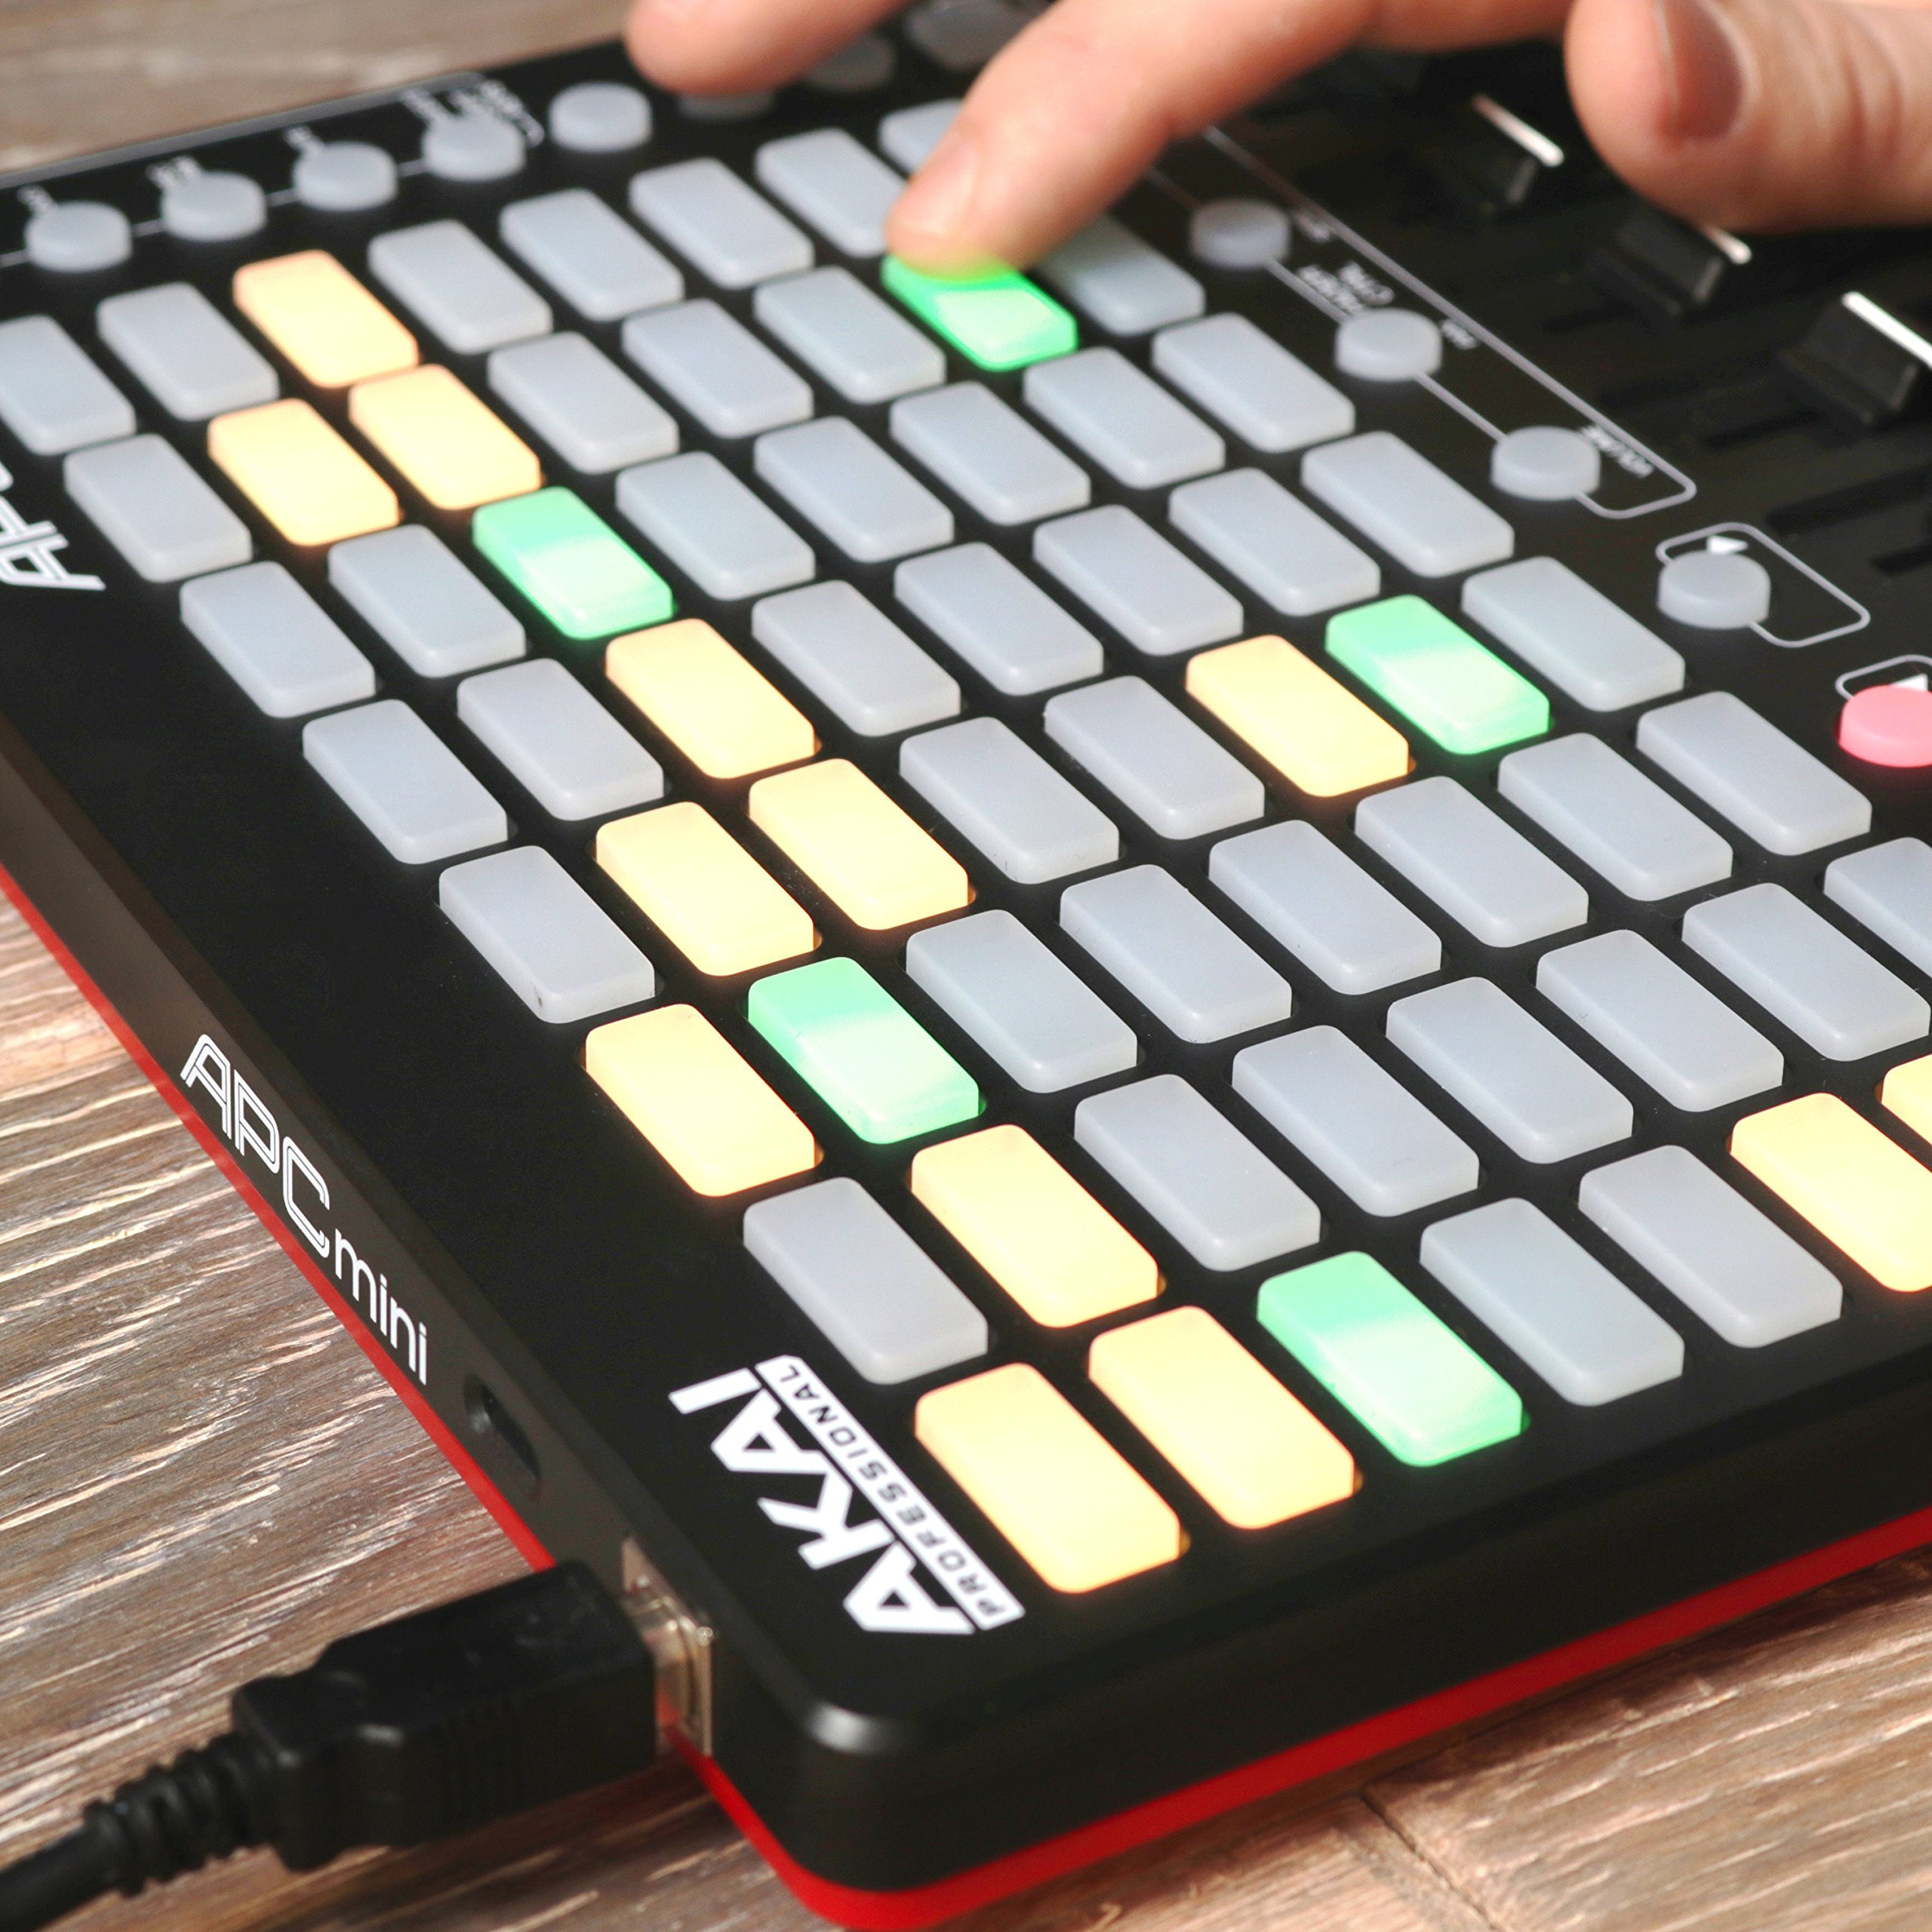 Akai Professional APC Mini | Compact Ableton Live controller with Ableton Live Lite Download (8x8 Backlit Clip-Launch Grid) by Akai (Image #2)